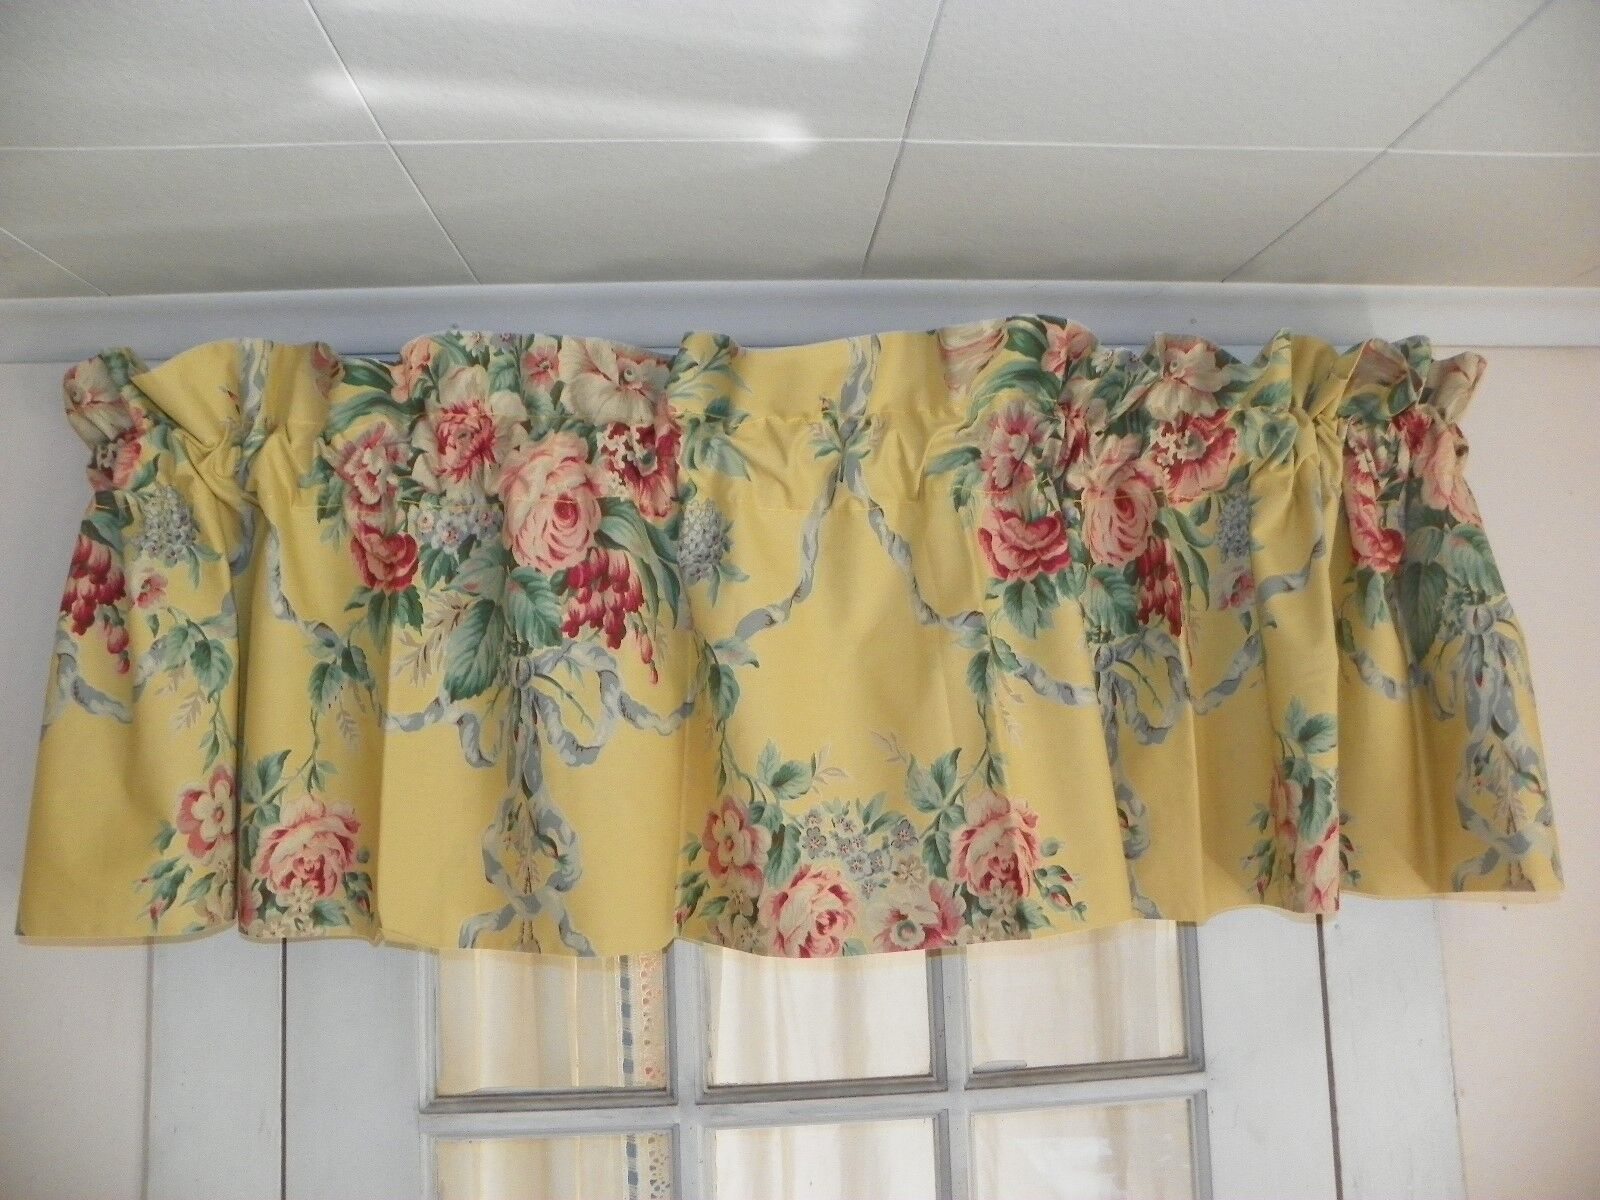 RALPH LAUREN  EVELYN  VALANCE   84  x 17 -Gelb floral  5 AVAILABLE-GORGEOUS